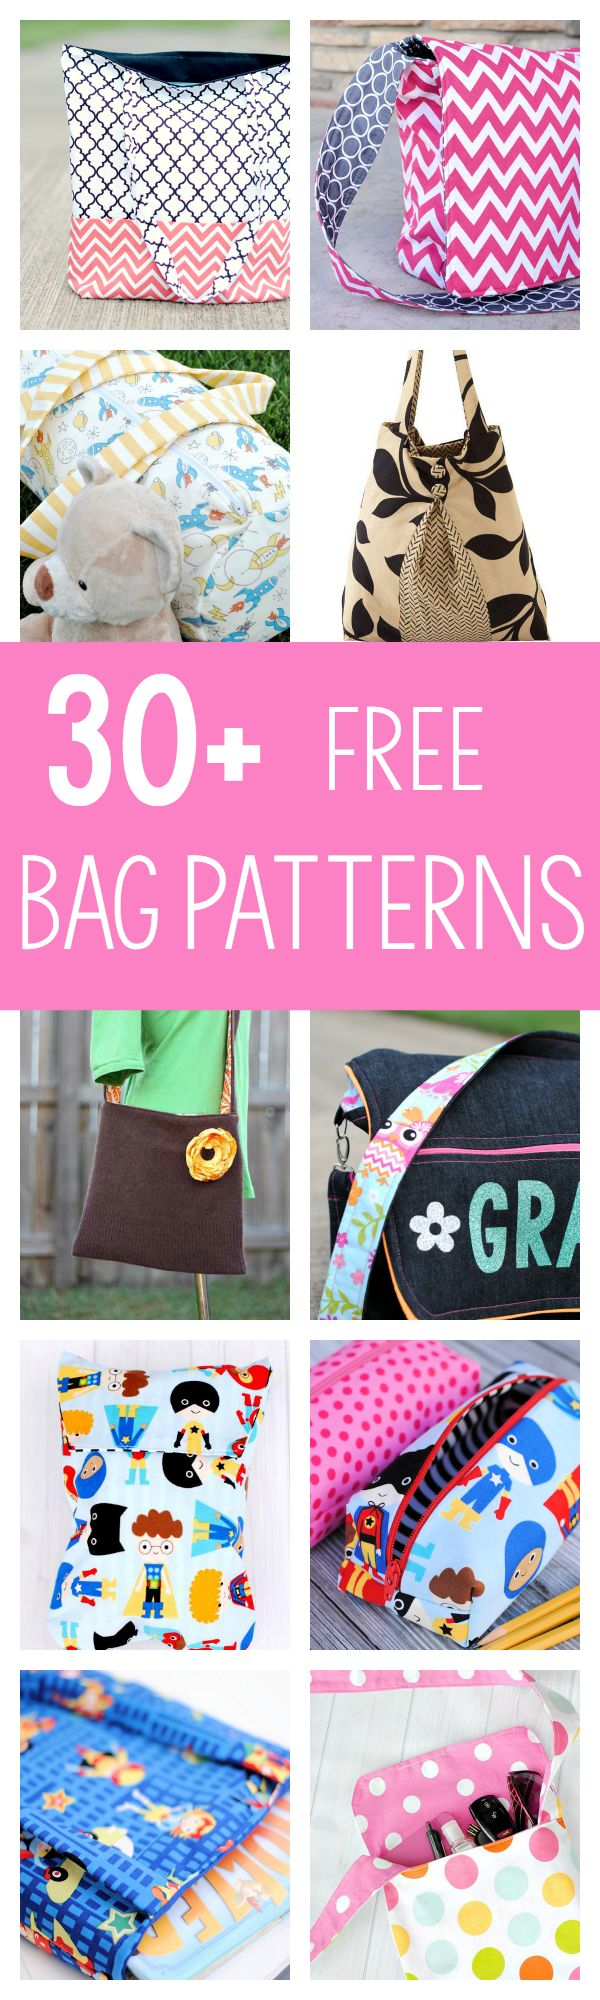 Tons of Great Free Bag Patterns to Sew